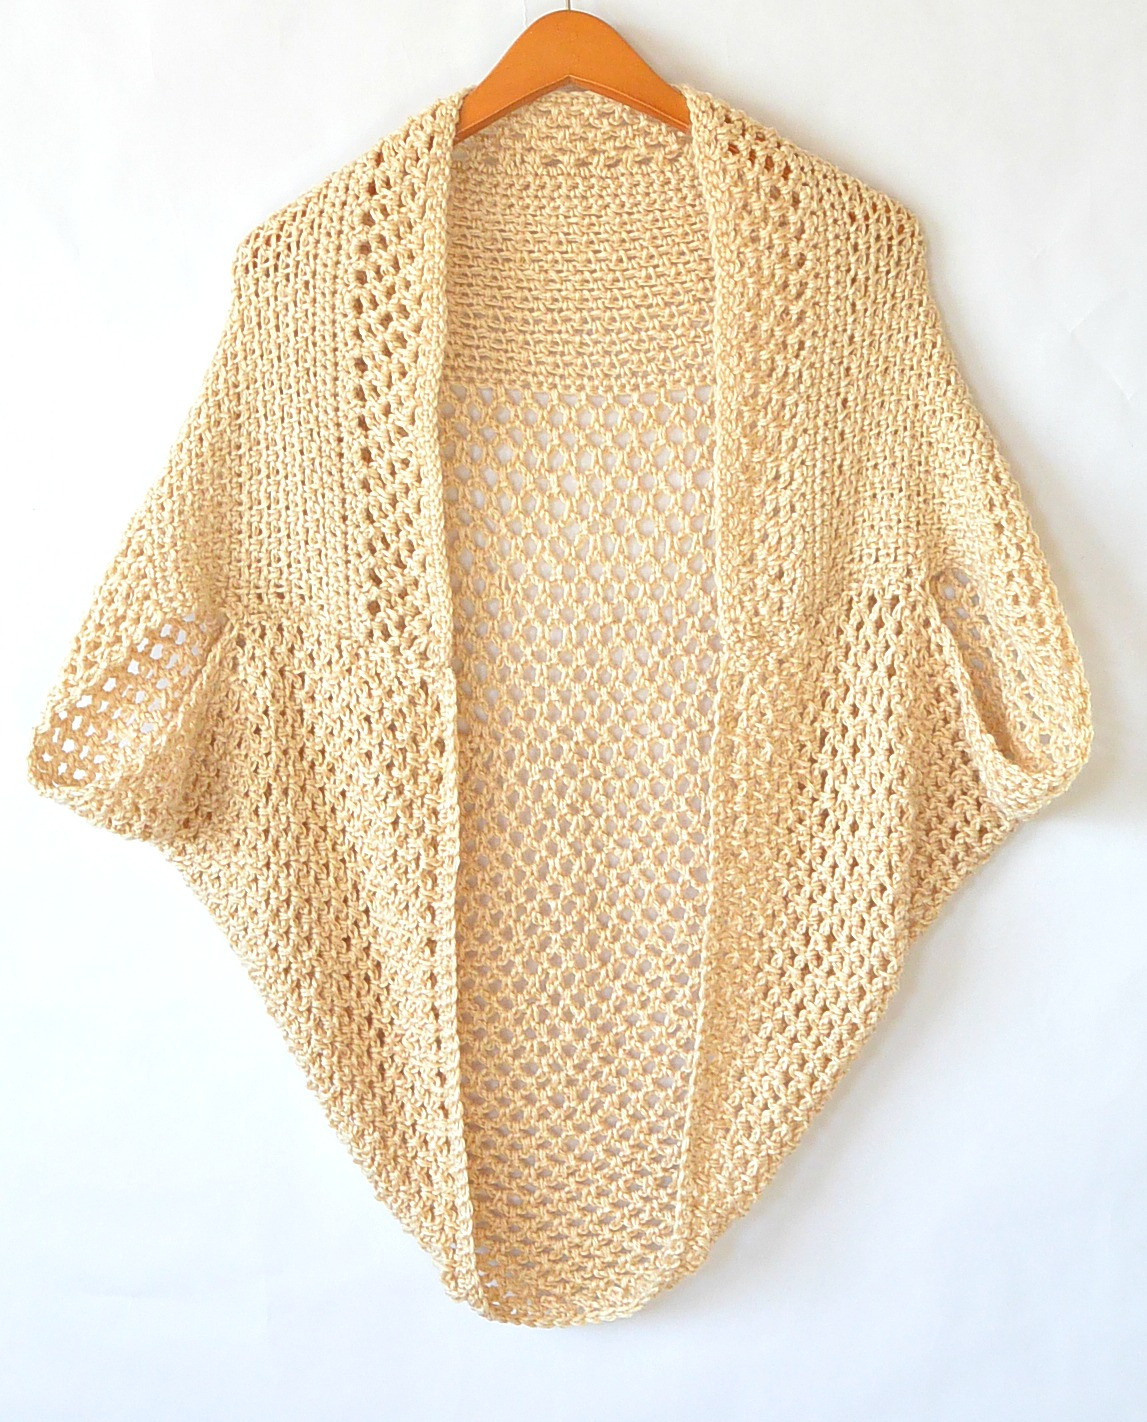 Crochet Cardigan Pattern Unique Mod Mesh Honey Blanket Sweater – Mama In A Stitch Of Perfect 41 Ideas Crochet Cardigan Pattern